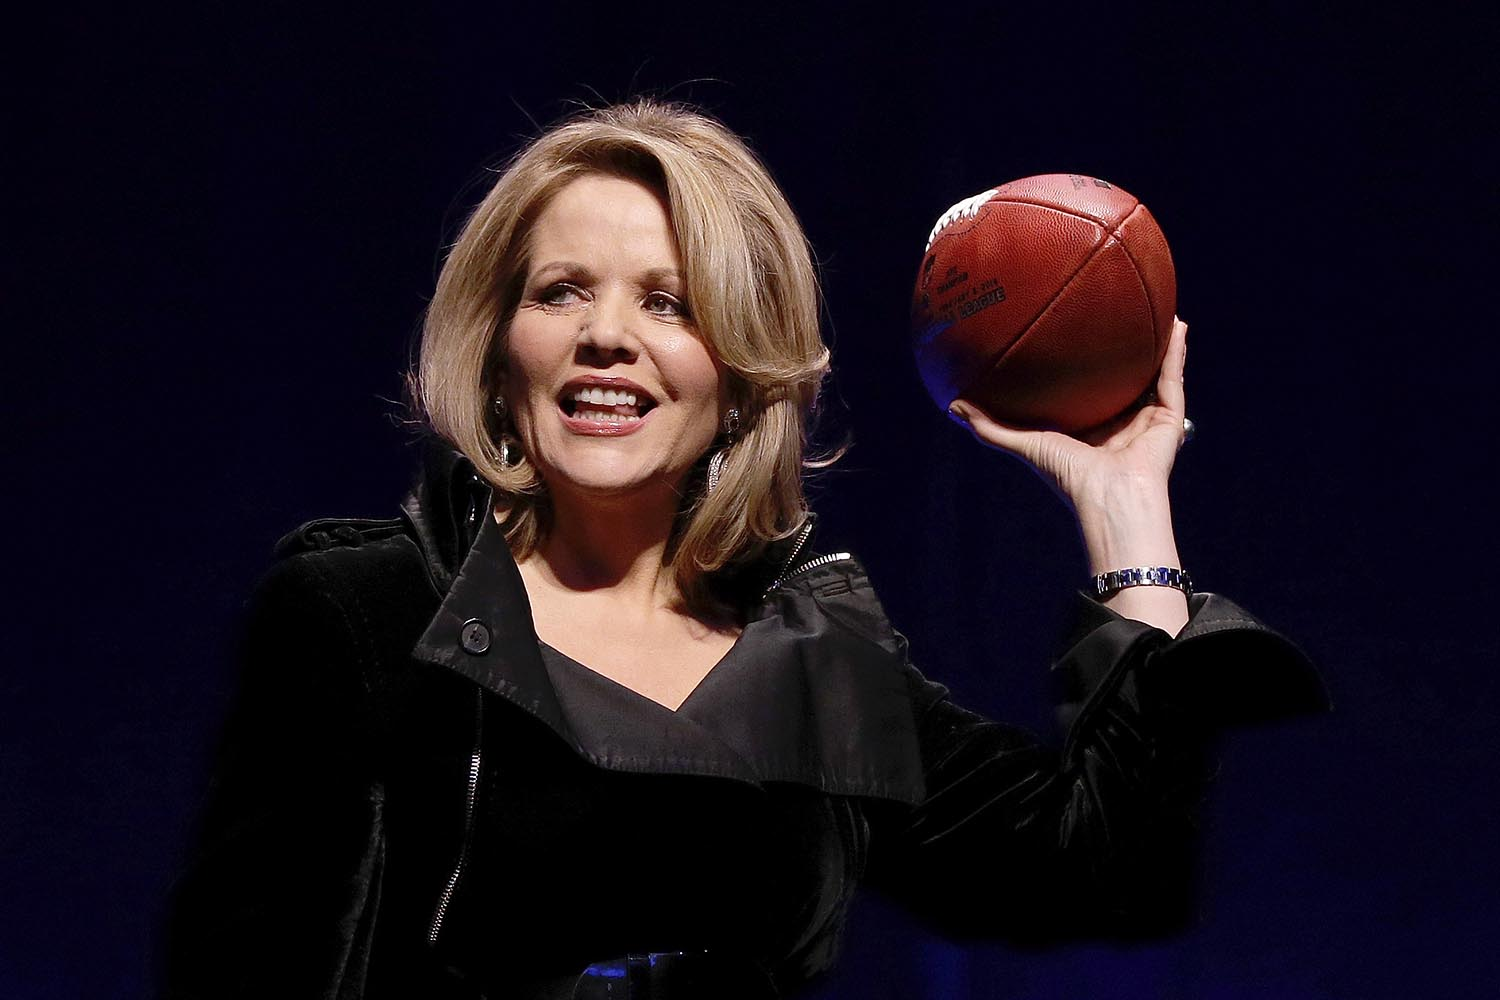 "<div class=""meta image-caption""><div class=""origin-logo origin-image ap""><span>AP</span></div><span class=""caption-text"">2014: Opera singer Renee Fleming who will sing the National Anthem before the NFL Super Bowl XLVIII football game holds the game ball during a press conference in New York. (AP Photo)</span></div>"